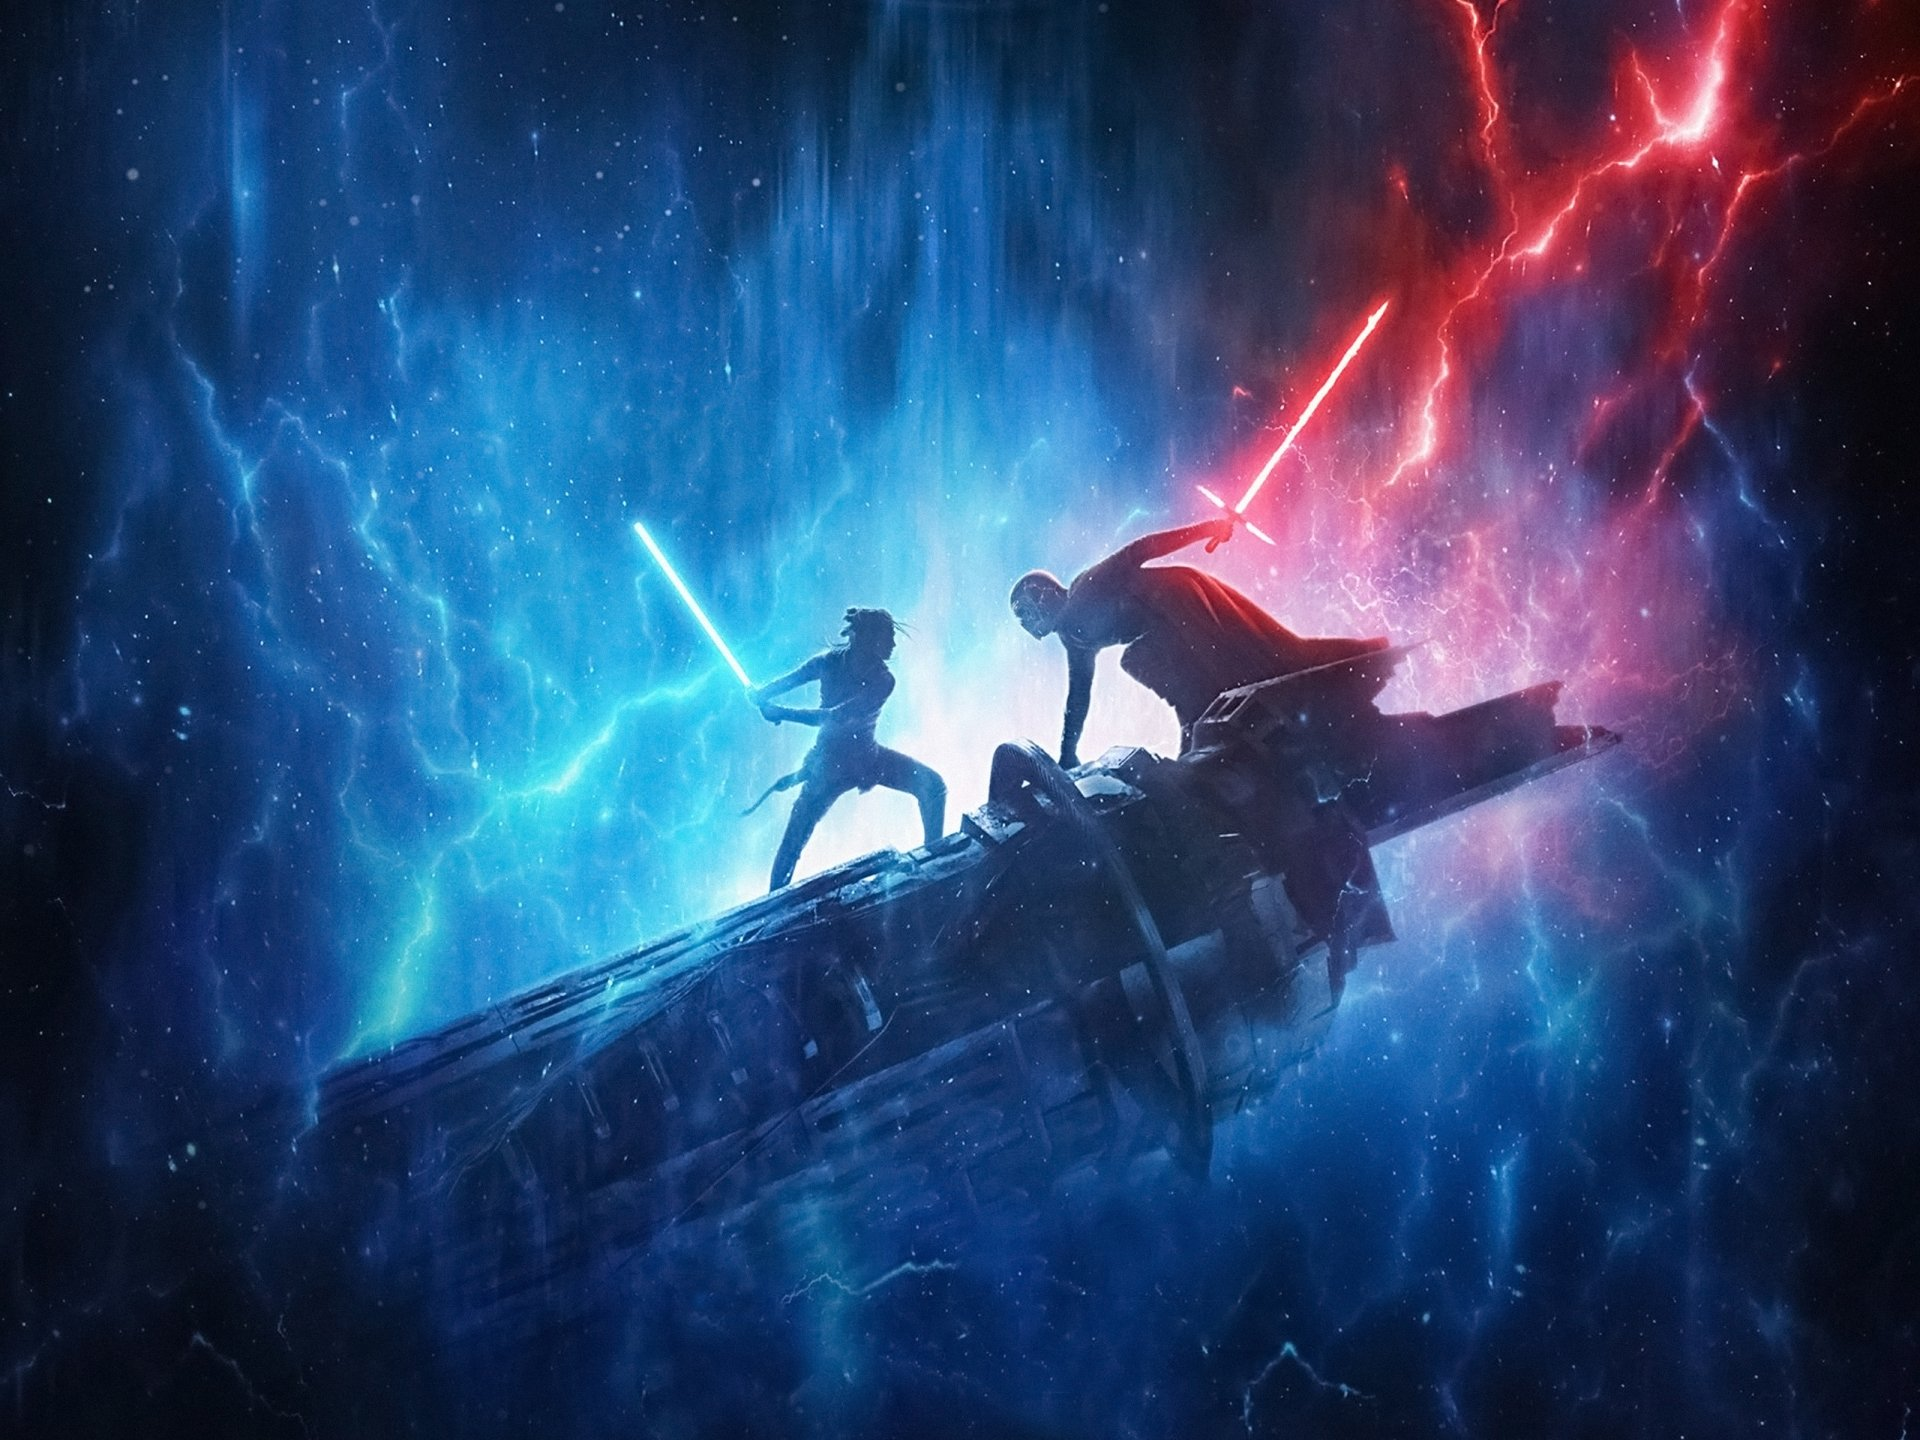 38 Star Wars: The Rise of Skywalker HD Wallpapers